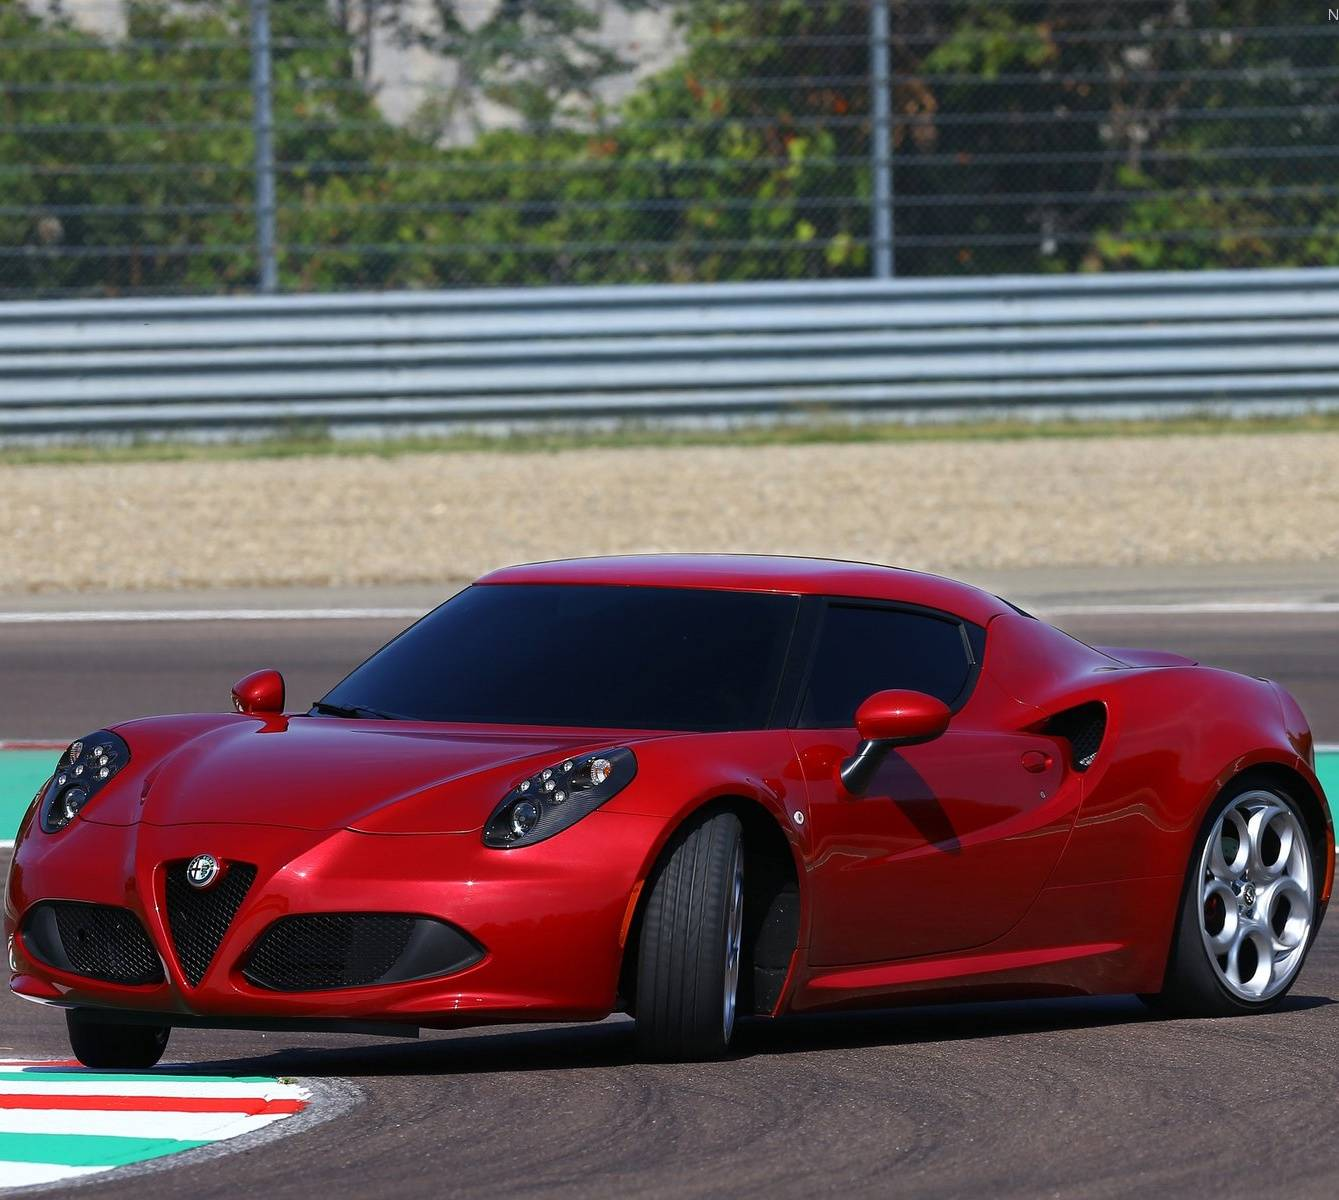 Alfa Romeo 4c Wallpaper By Simplemistake 14 Free On Zedge